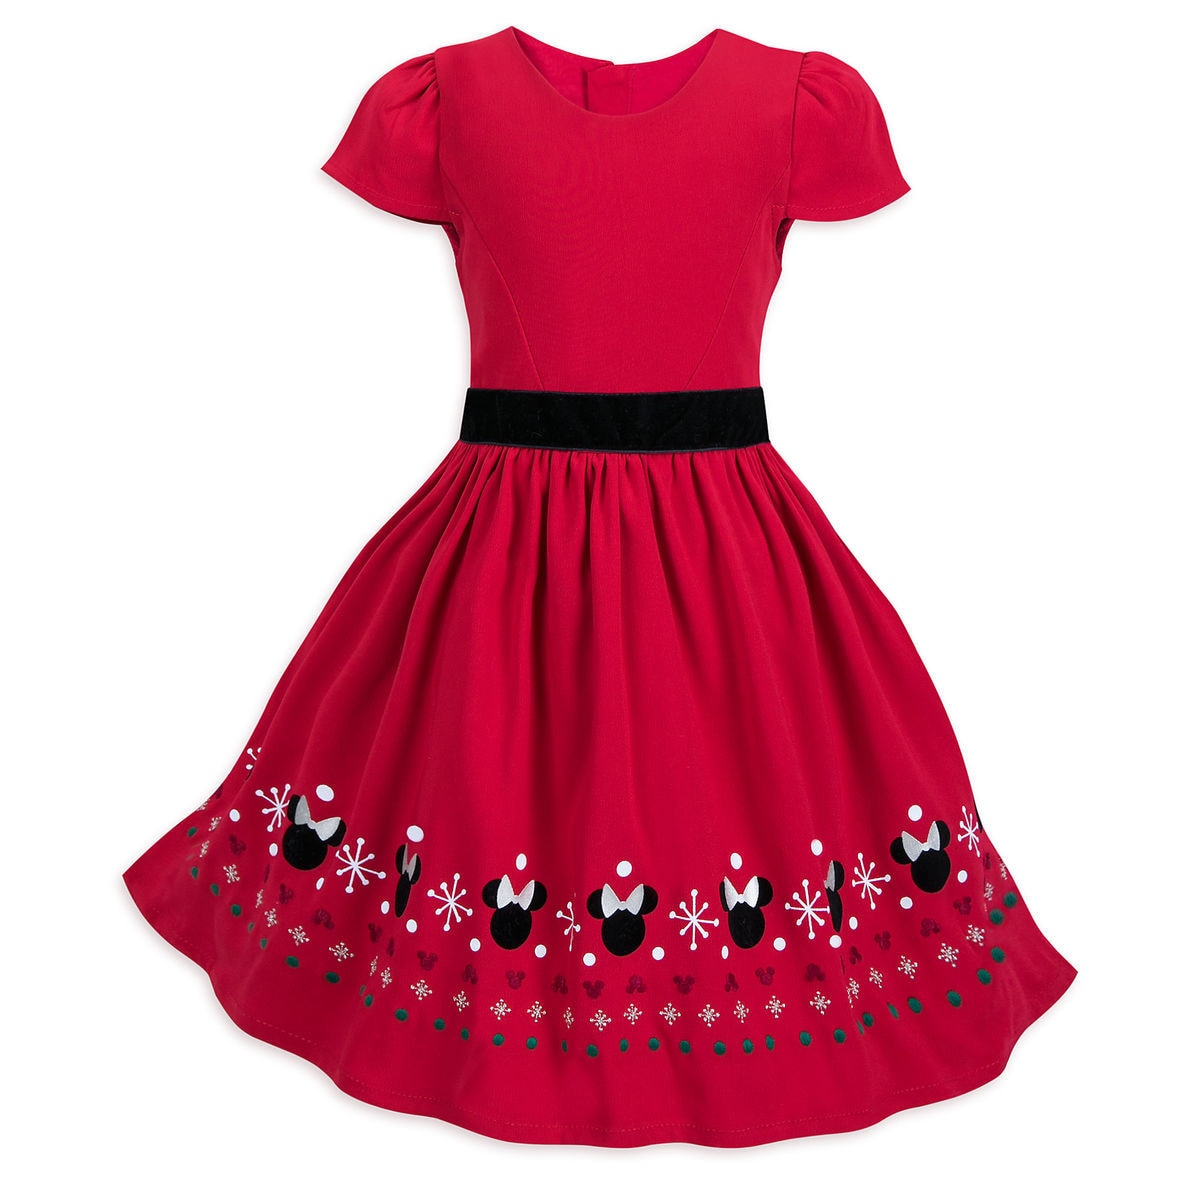 Product Image Of Minnie Mouse Holiday Fancy Dress For Girls 1